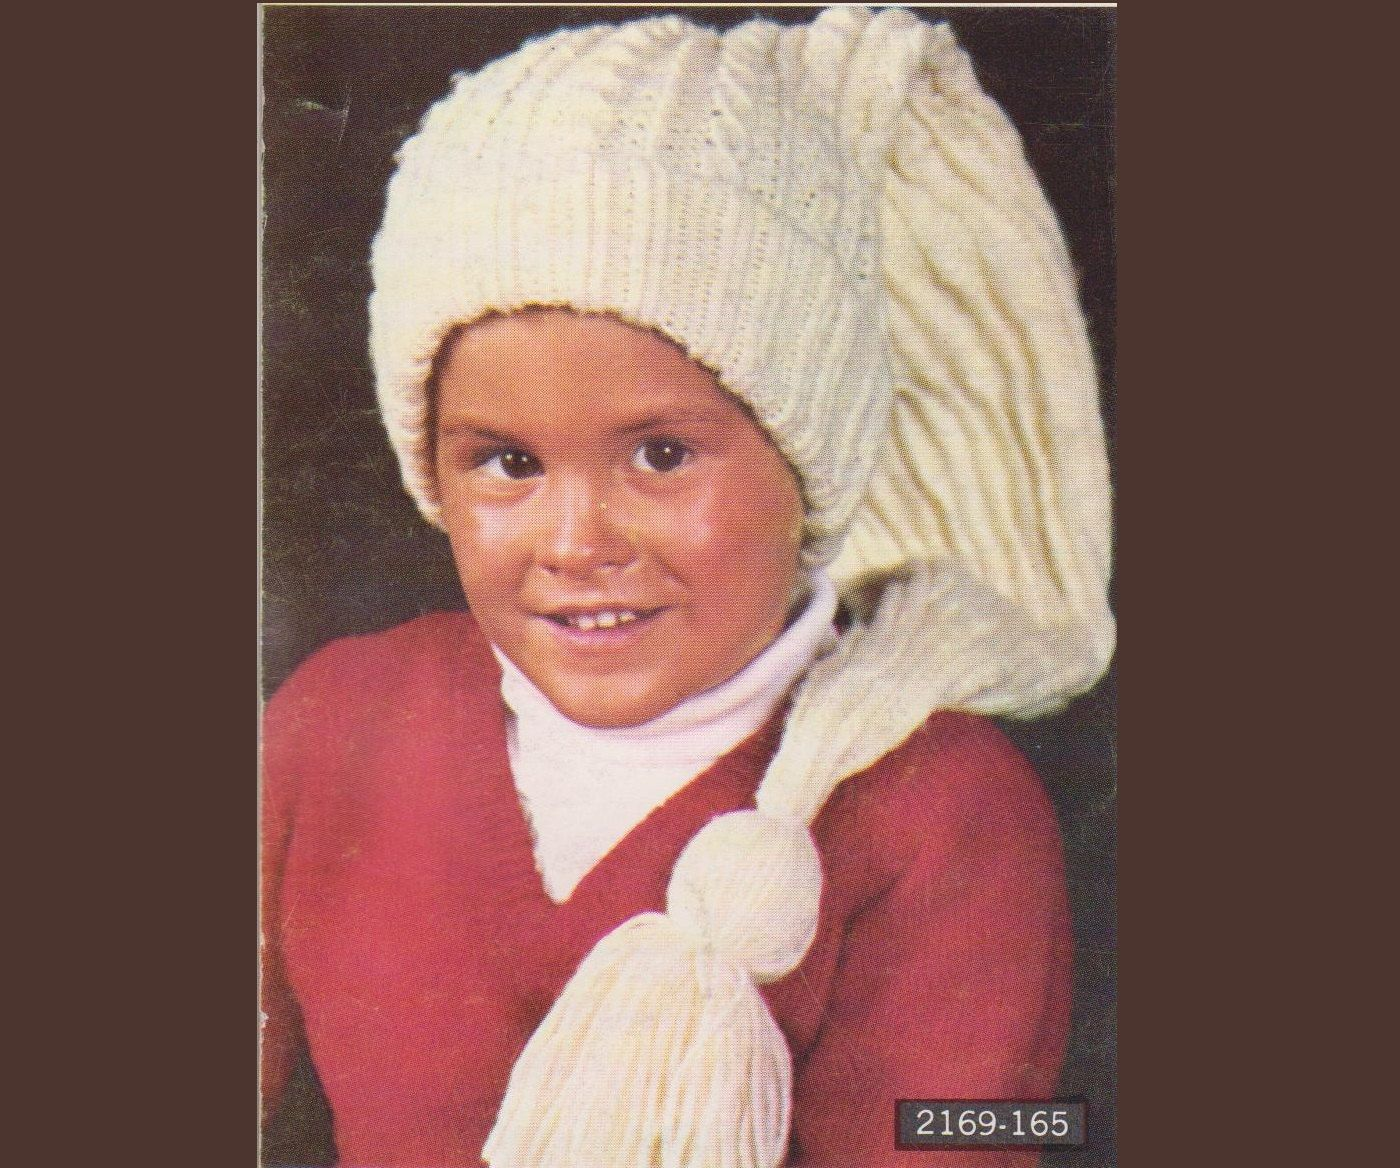 Kids extra long stocking cap with tassel twisted ribbing kids extra long stocking cap with tassel twisted ribbing 1960s vintage knitting pattern bankloansurffo Choice Image